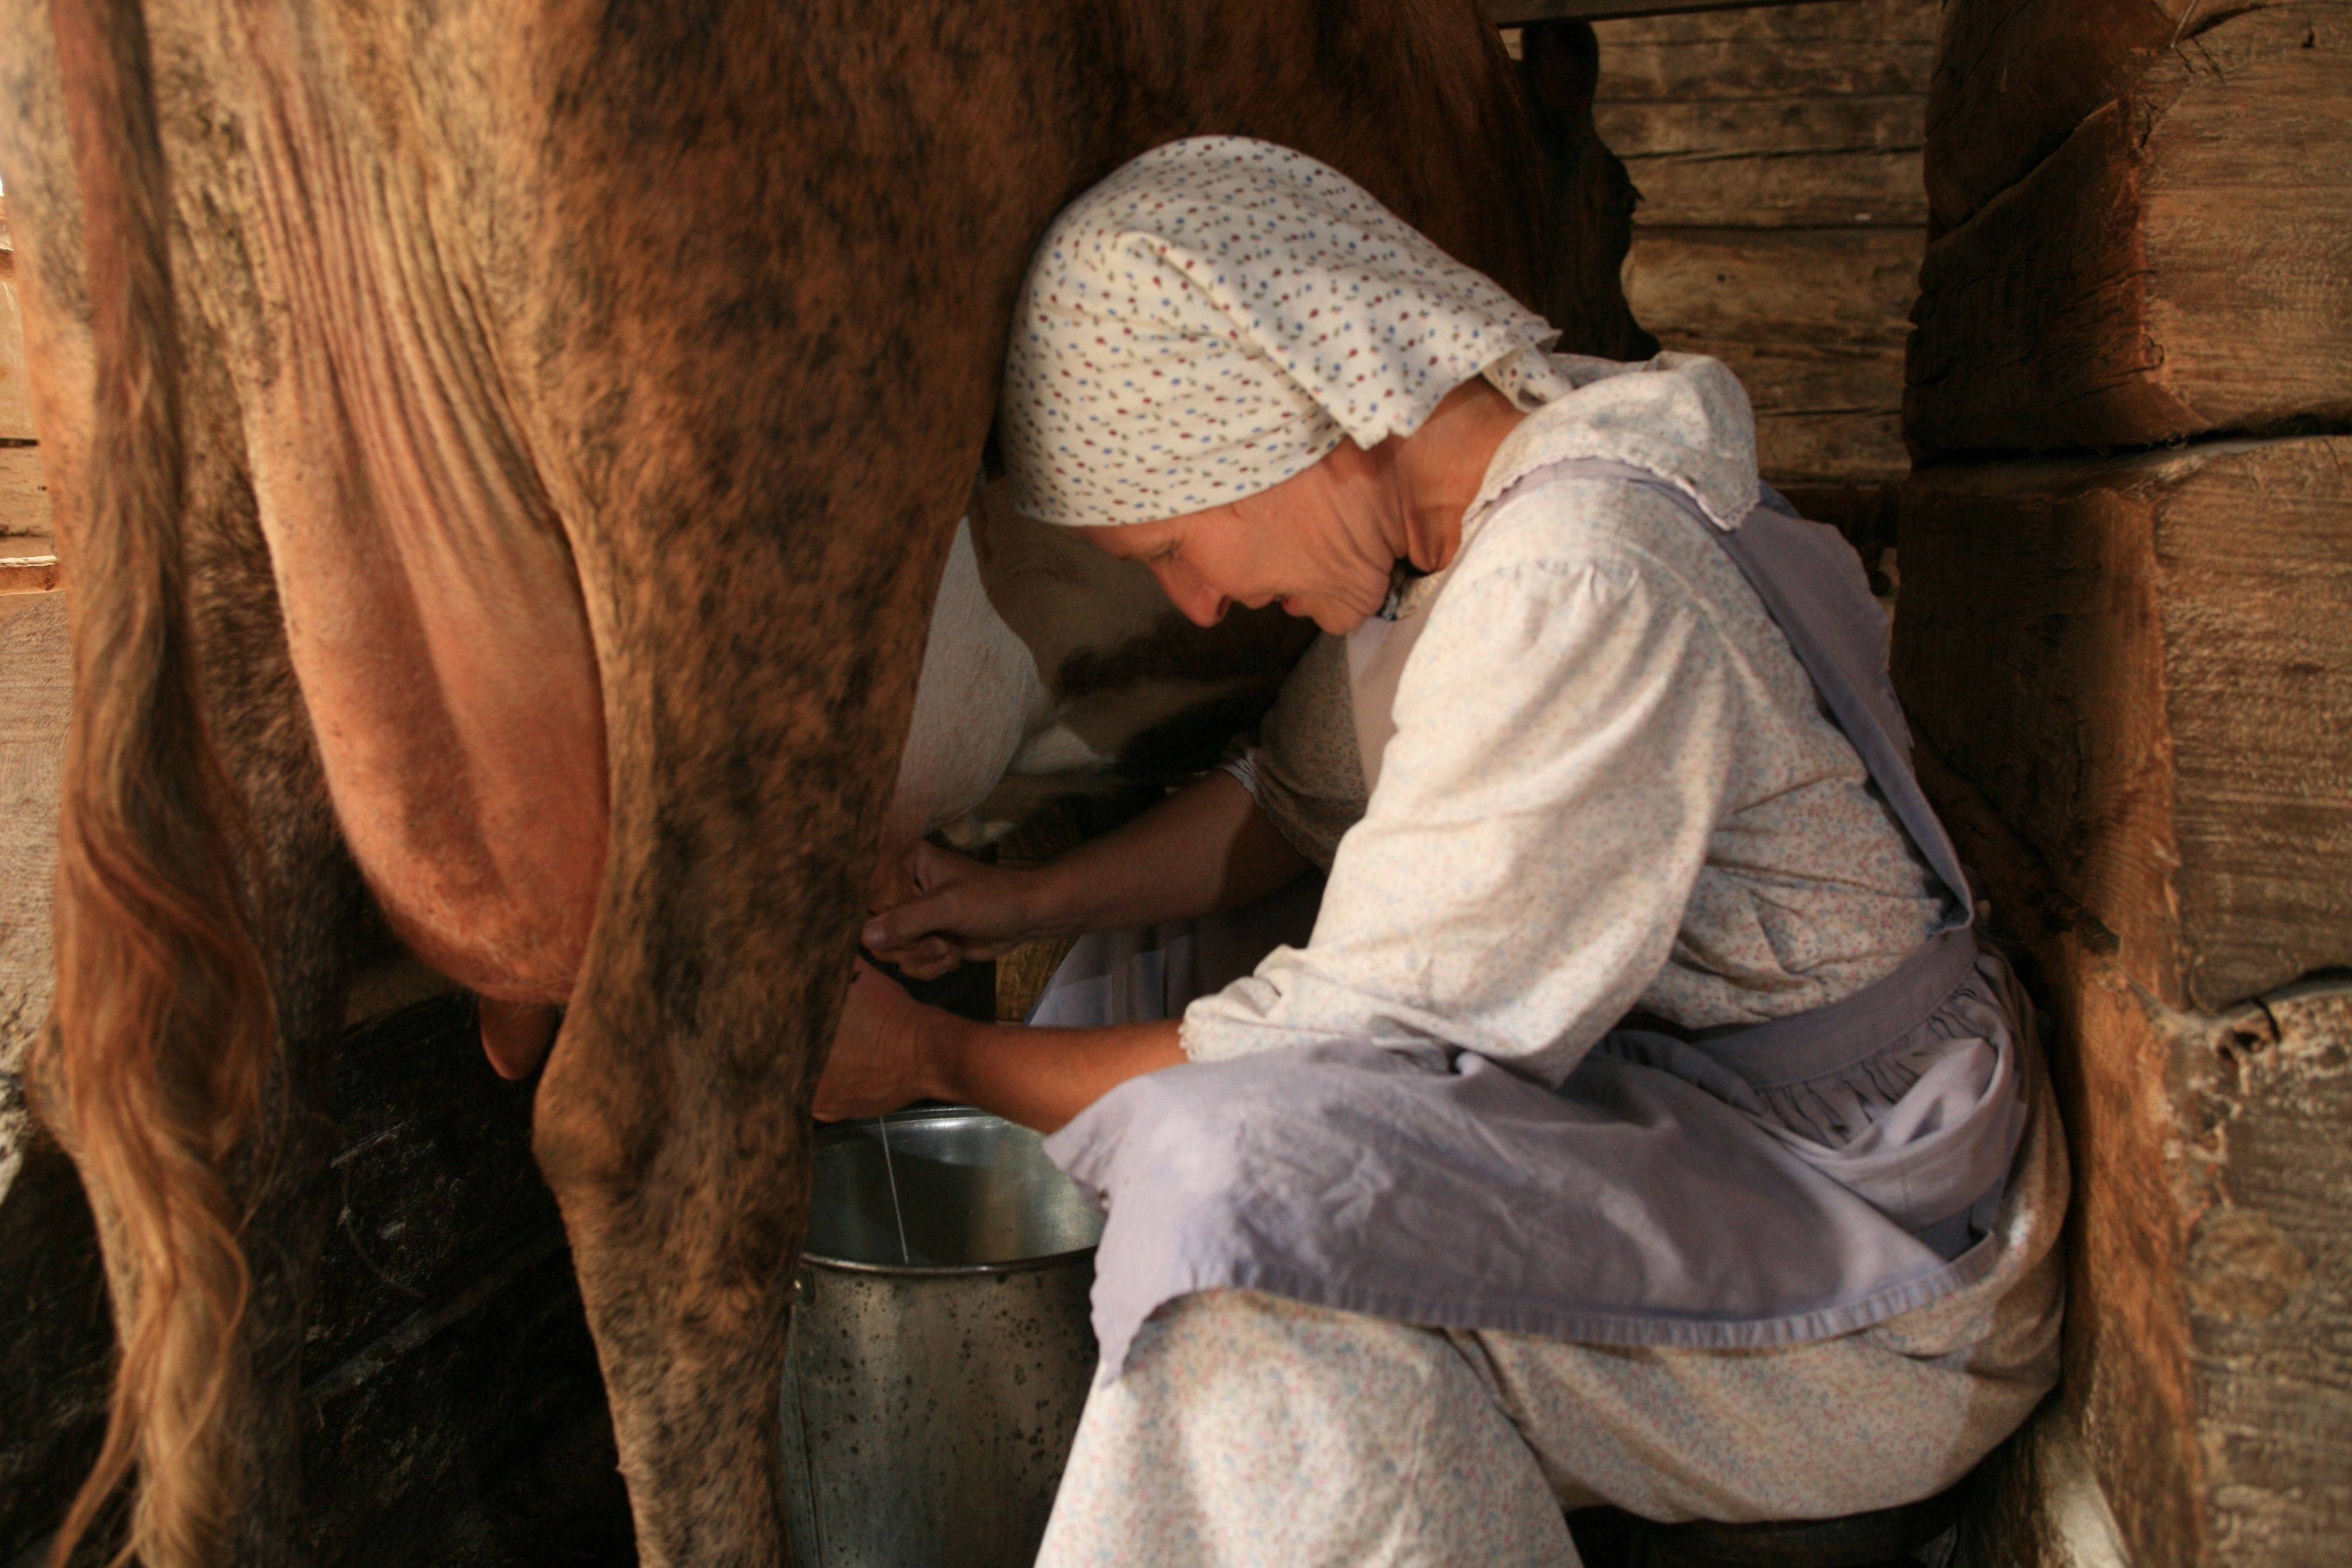 Old World Wisconsin will host �Saturdays in September� featuring a variety of activities including cow milking.